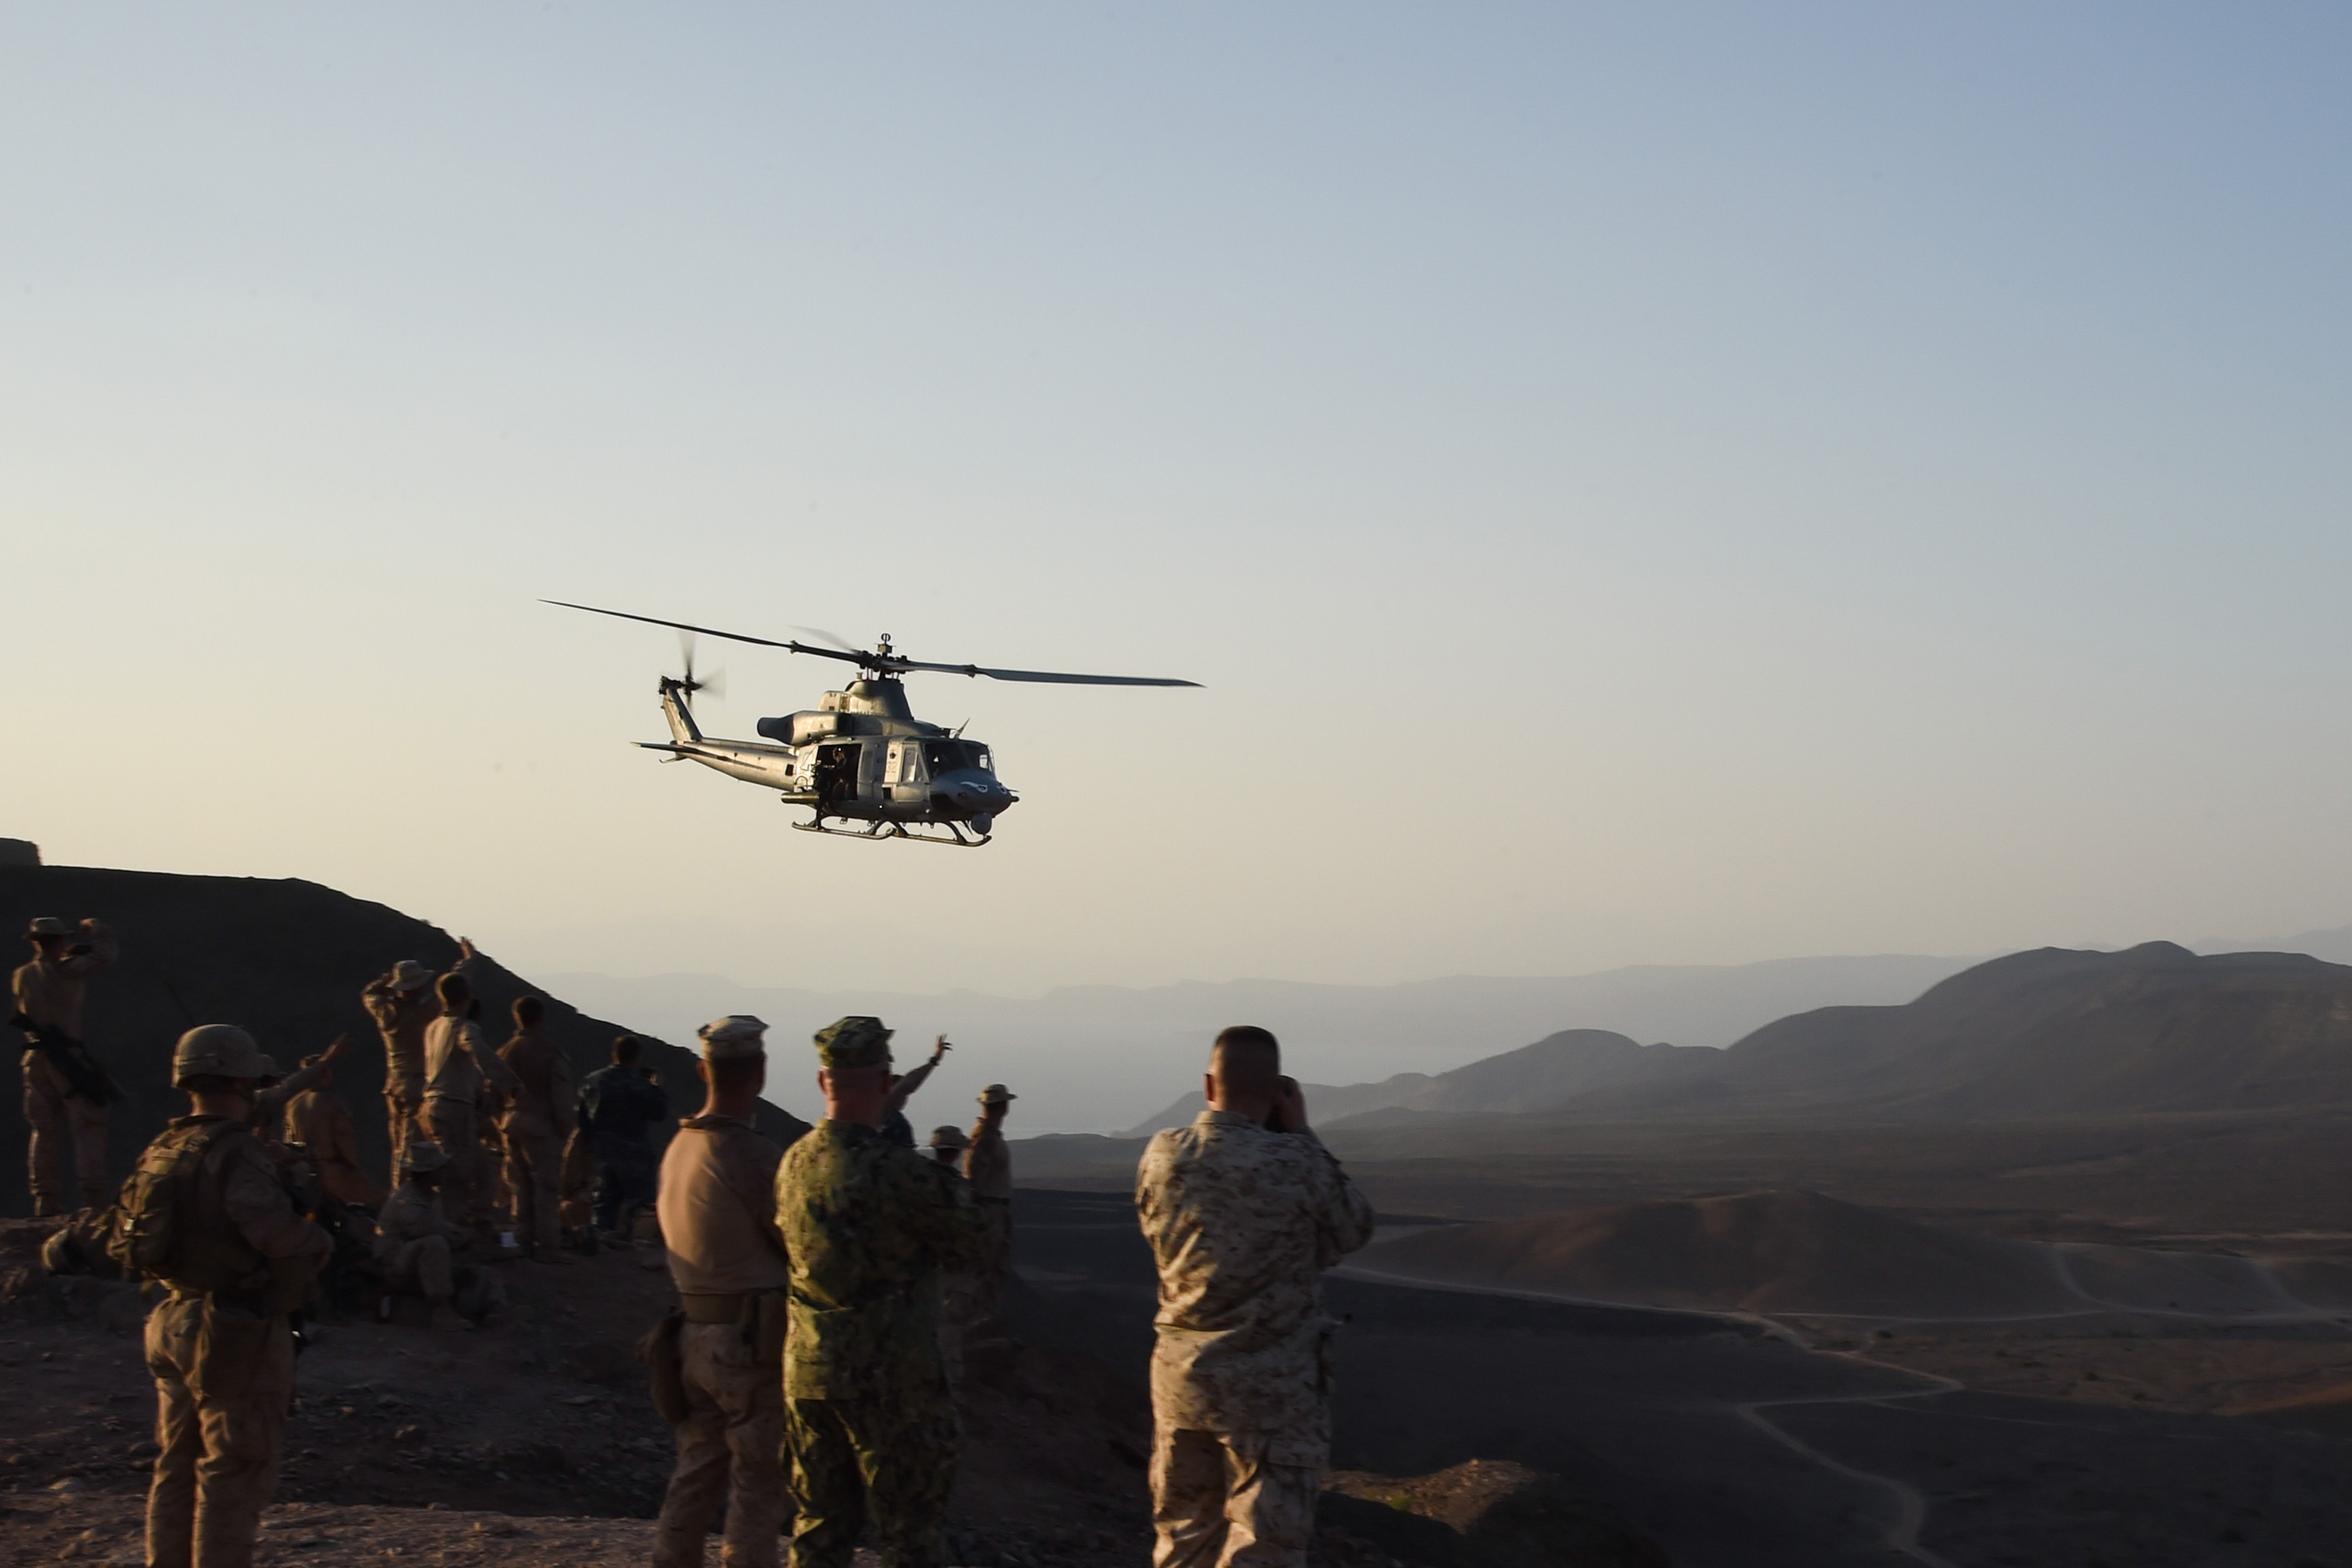 U.S. Marine Corps members with the11th Marine Expeditionary Unit (MEU), and Sailors from the Makin Island Amphibious Ready Group, watch an UH-1Y Huey helicopter fly over after a helo-borne raid on the range during Exercise Alligator Dagger, Dec. 18, 2016, at Arta Plage, Djibouti. The exercise allows opportunities for the 11th MEU to maintain their respective skills and proficiencies while intermittently participating in bilateral training with the French. (U.S. Air National Guard photo by Staff Sgt. Penny Snoozy)